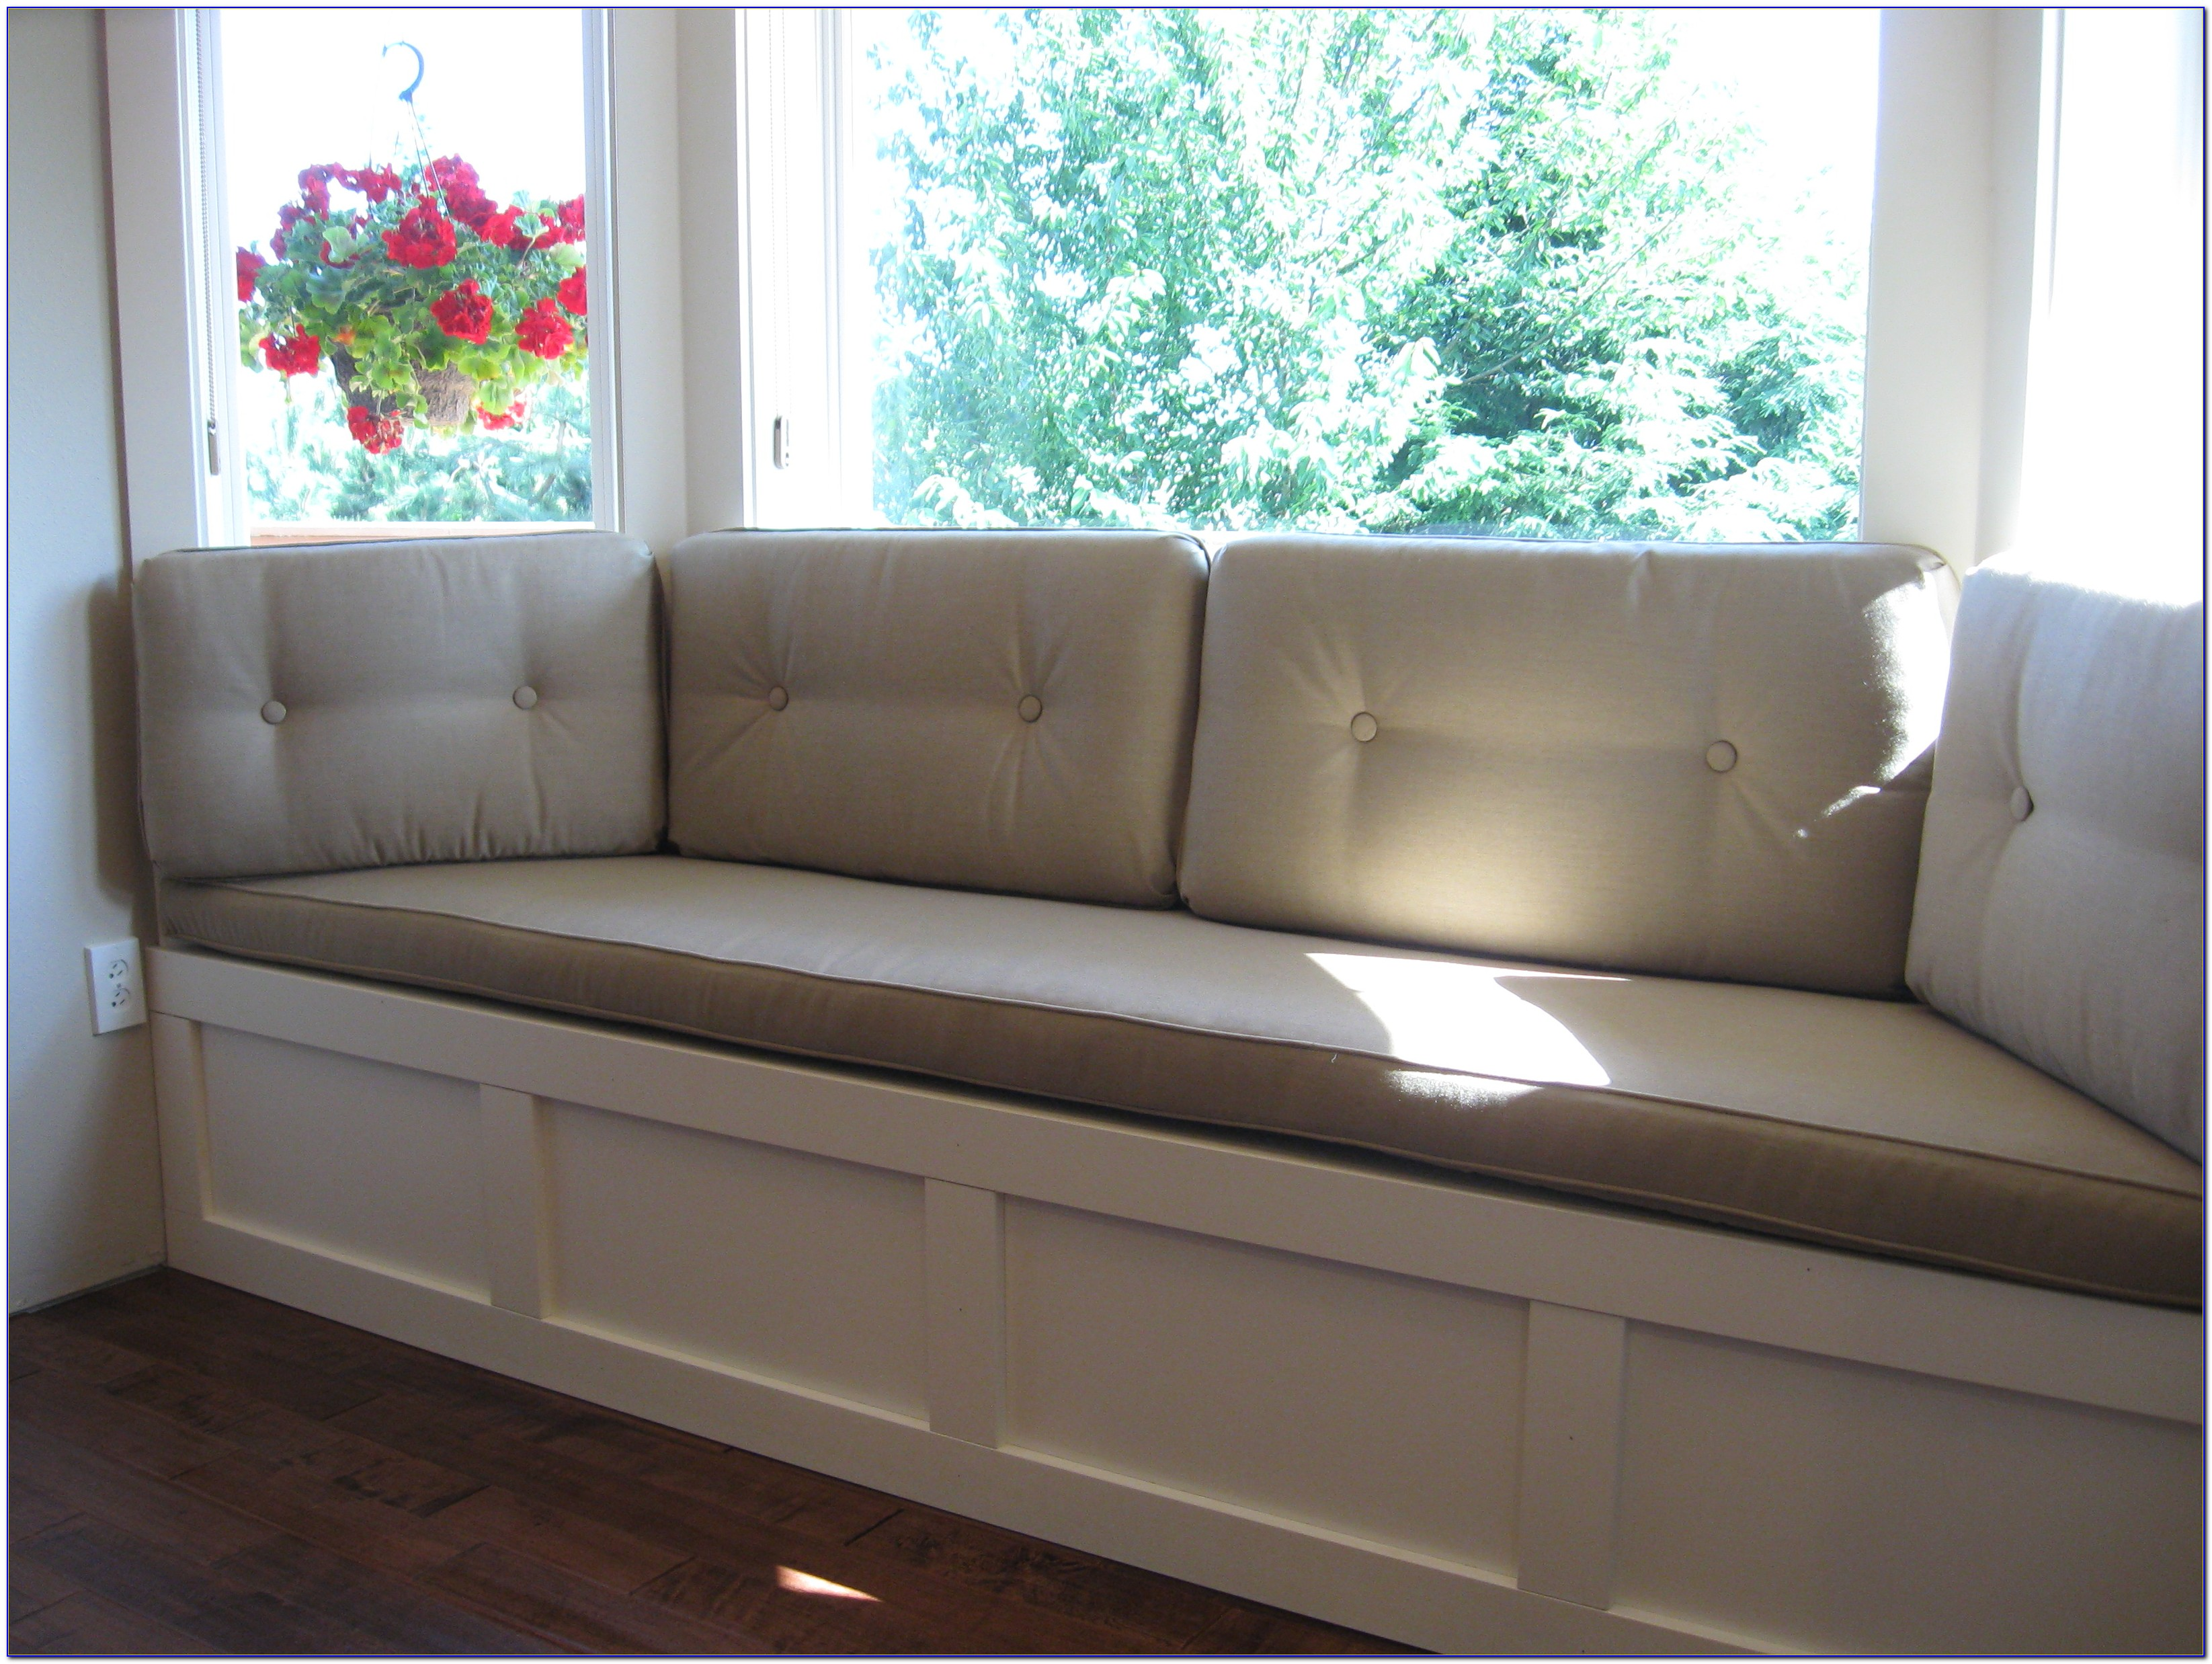 Window Bench Seat Cushions Indoor Bench Home Design Ideas B1pmko2yd6106409